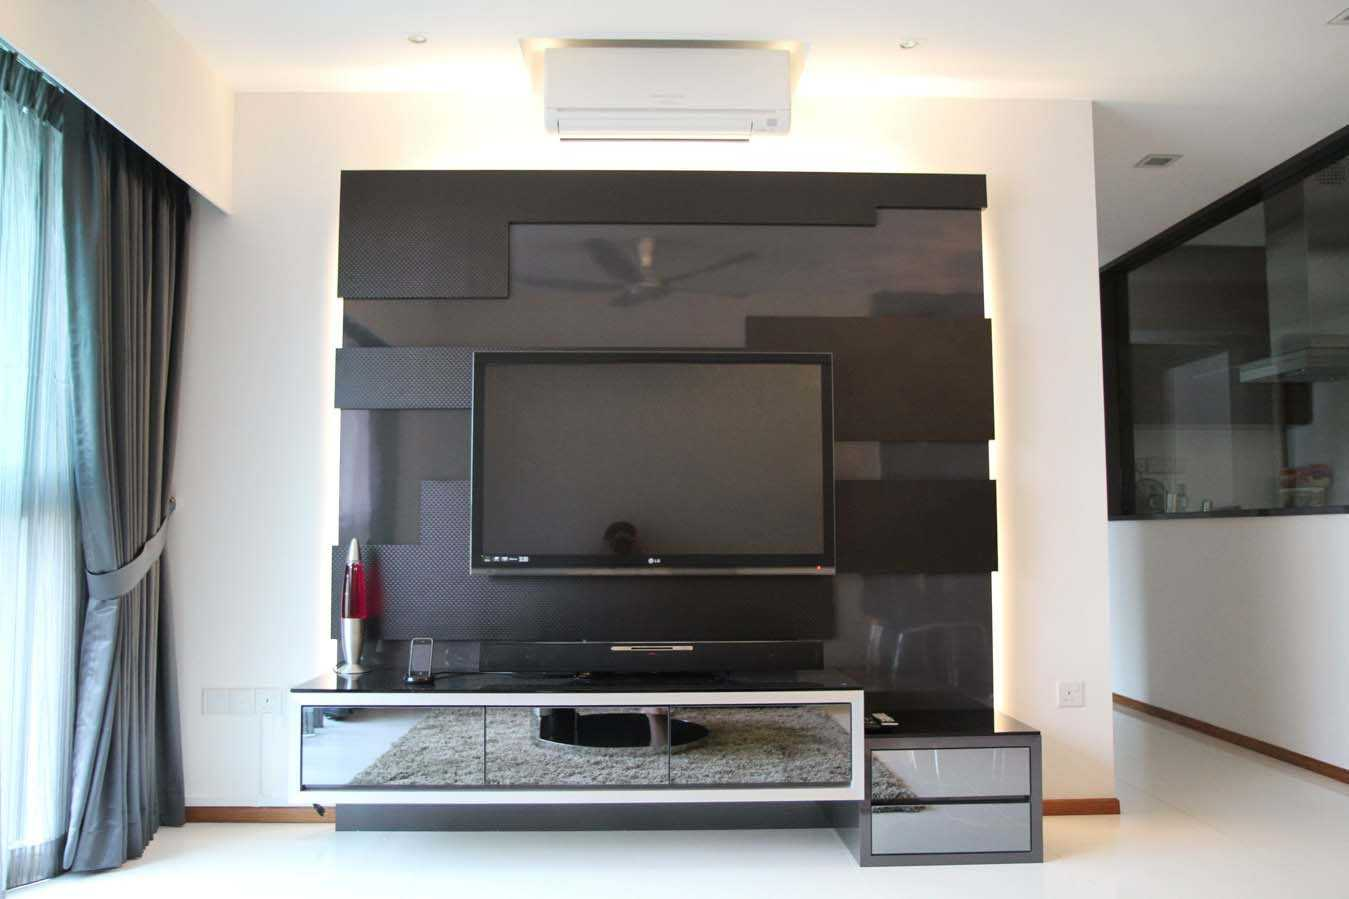 bedroom tv unit design home design. Black Bedroom Furniture Sets. Home Design Ideas